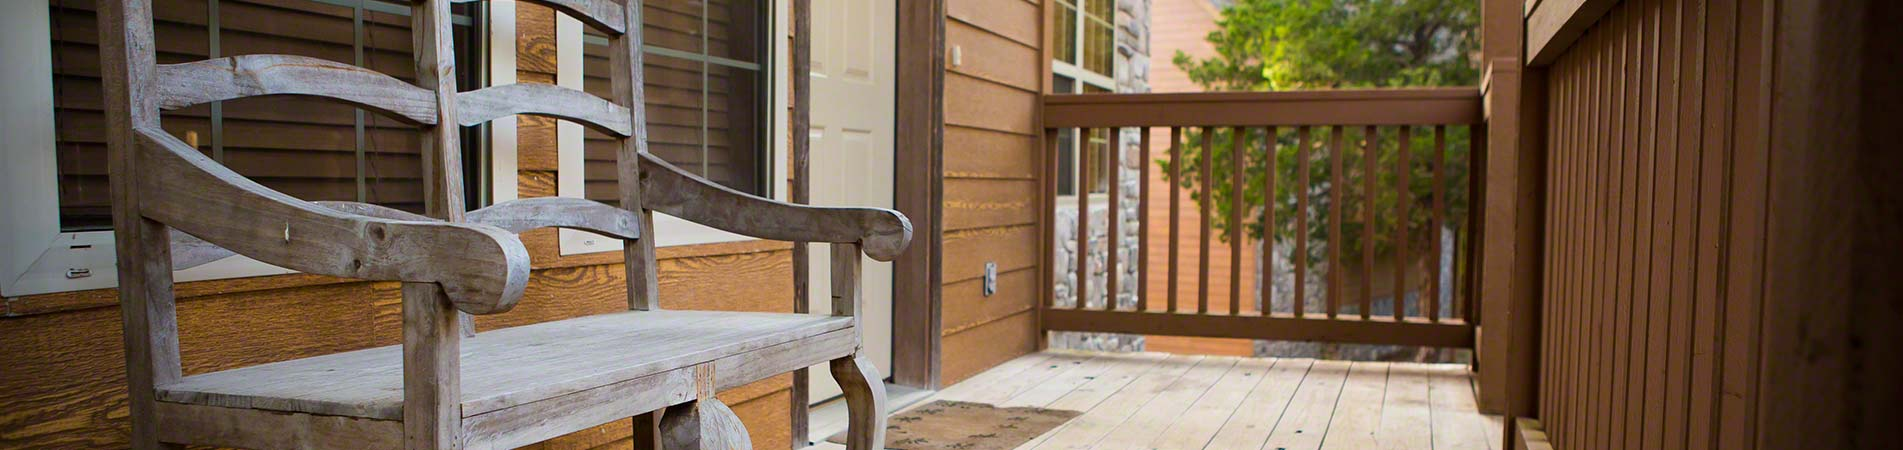 The relaxing porch you'll find with a lot of amazing Branson, MO cabins.